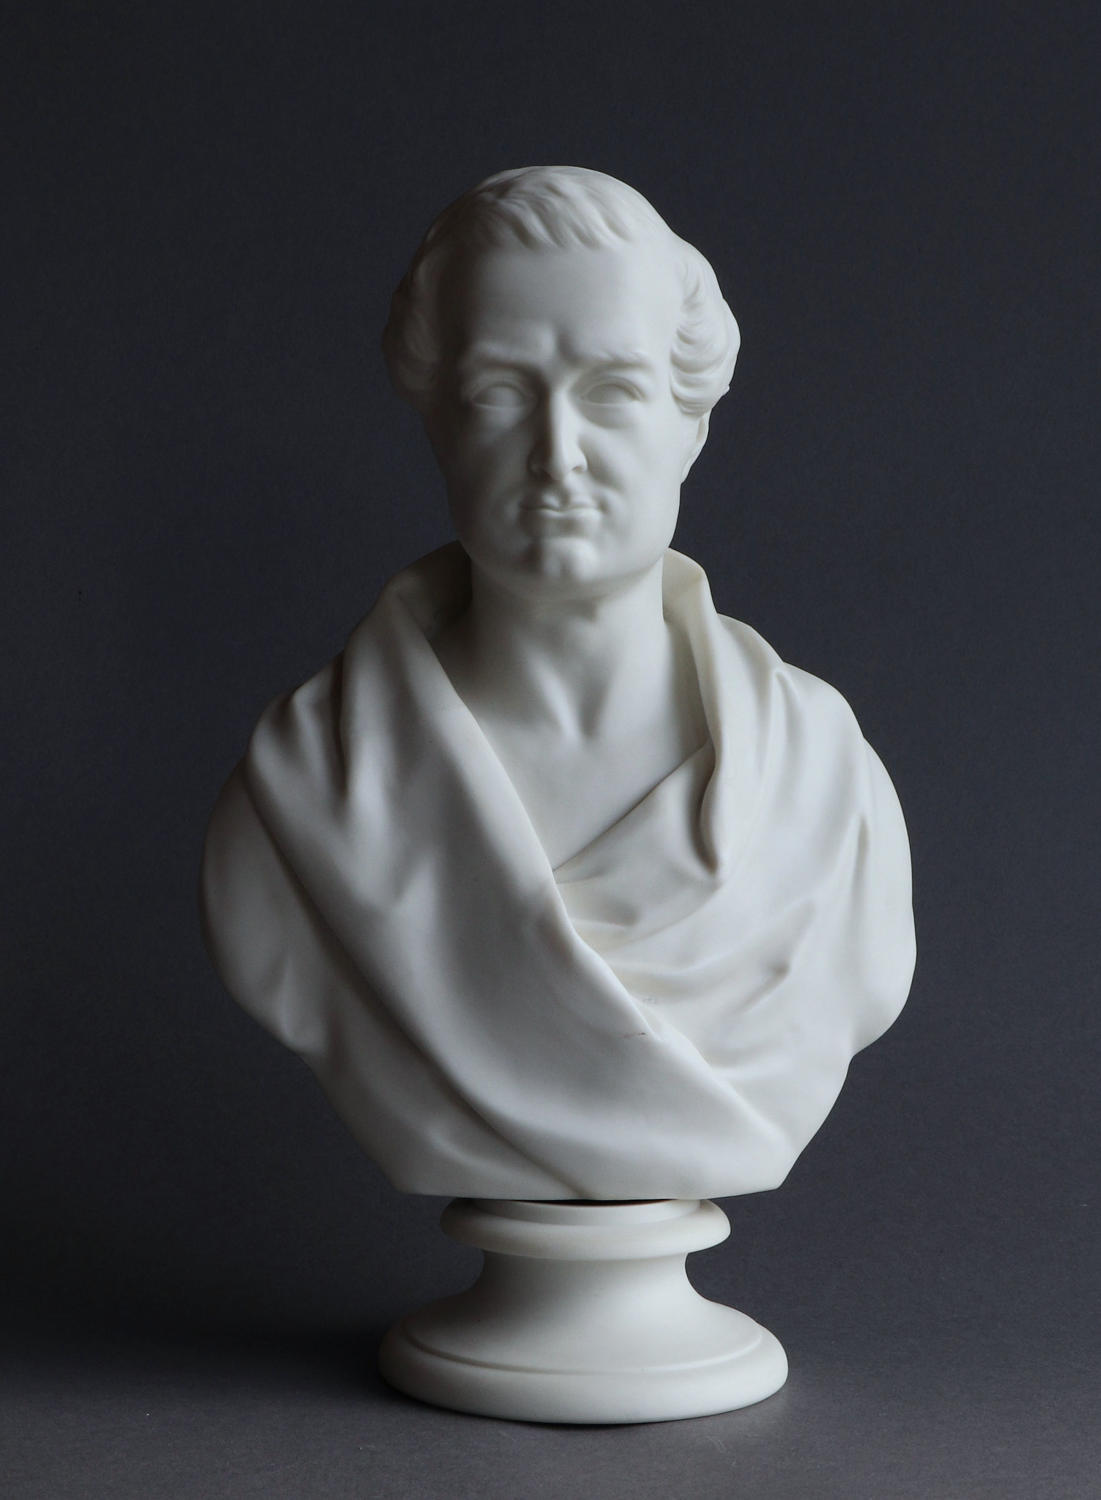 A Parian bust of Robert Peel by Samuel Alcock